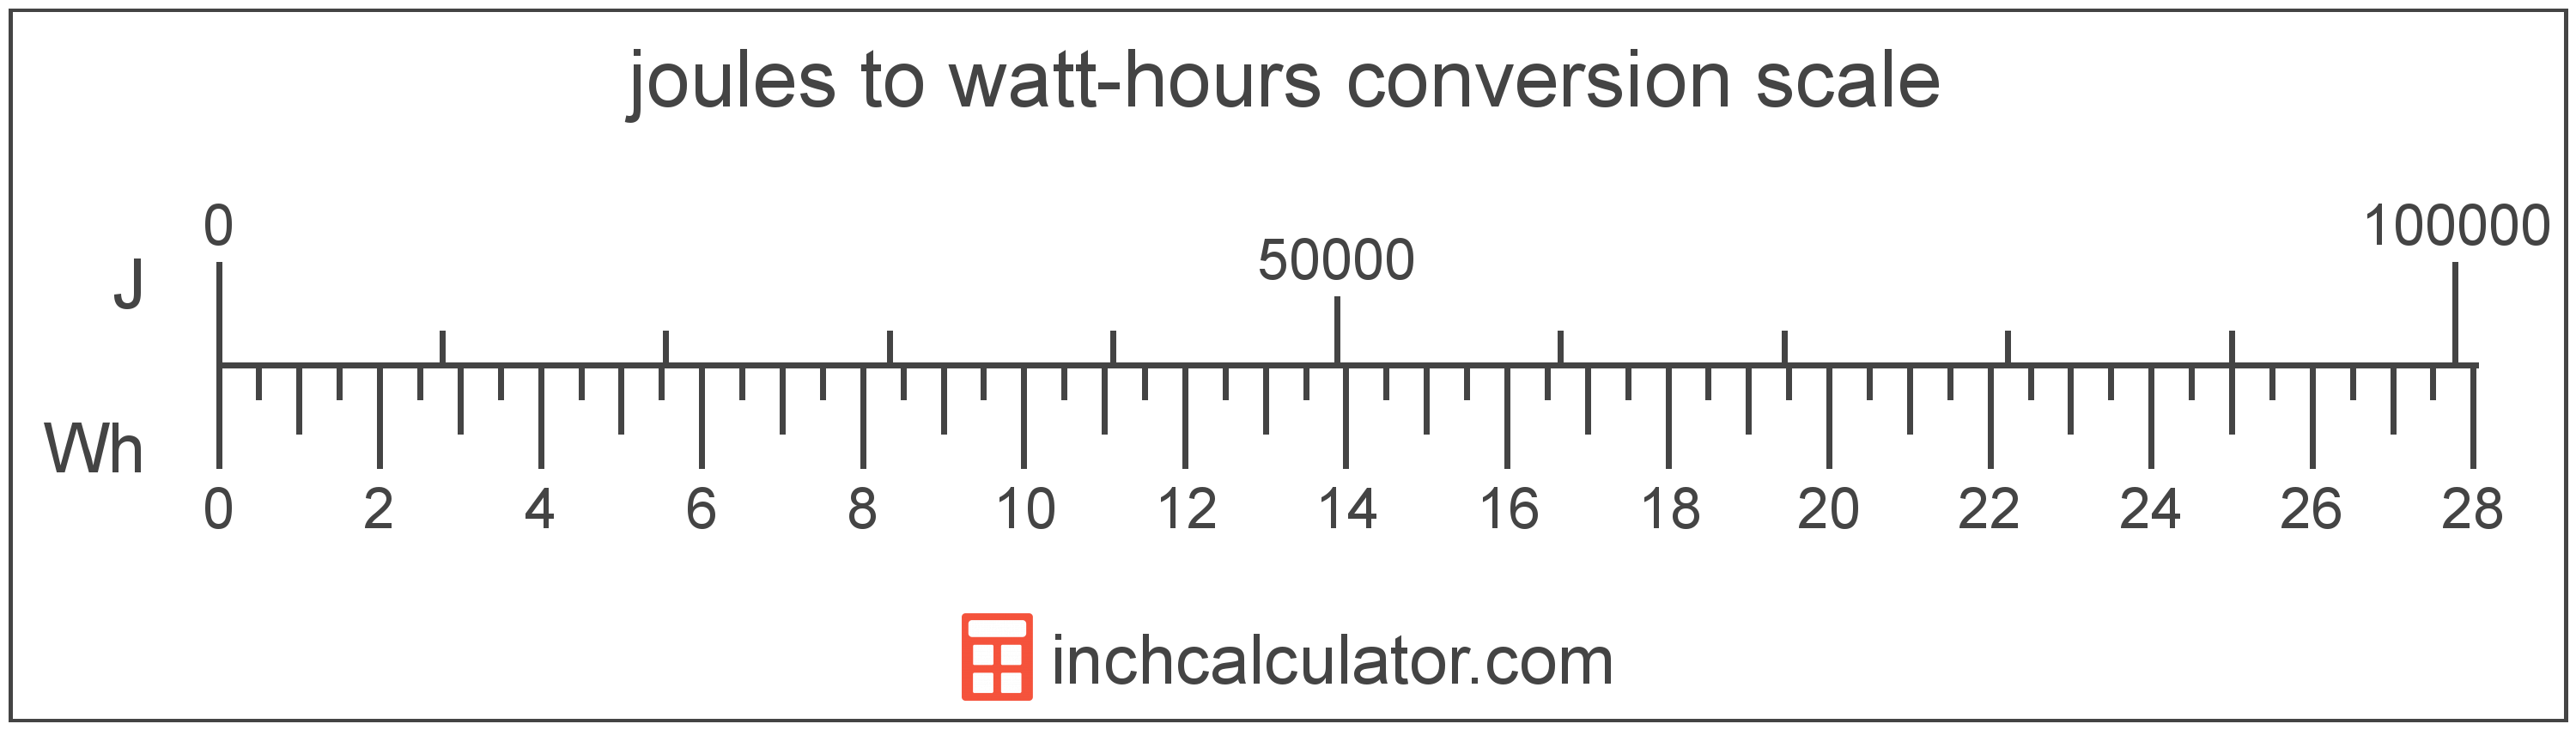 conversion scale showing watt-hours and equivalent joules energy values